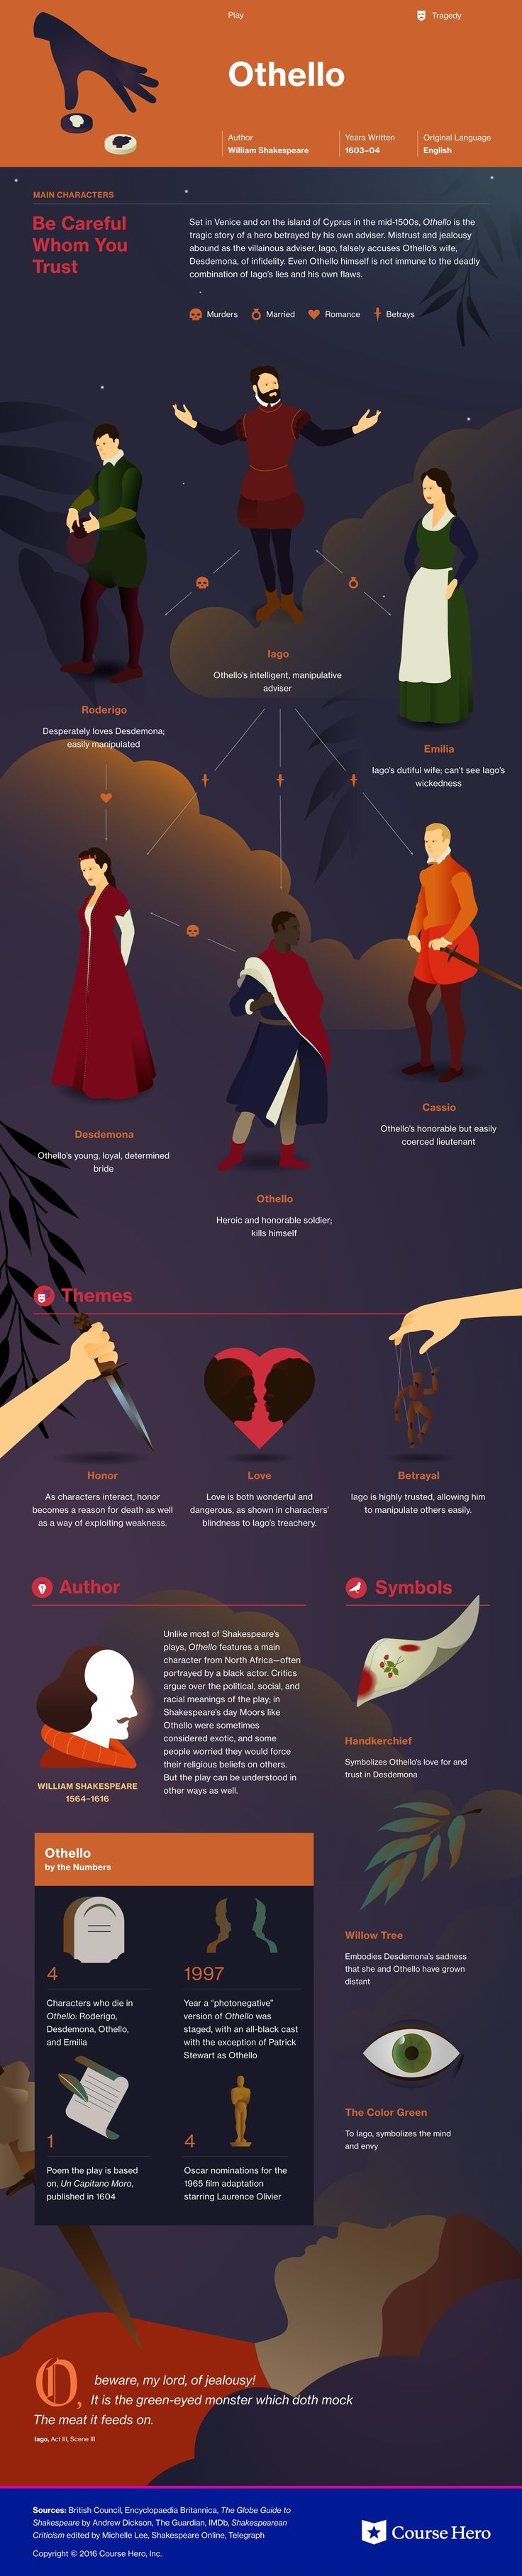 Othello infographic || Ideas and inspiration for teaching GCSE English || www.gcse-english.com ||